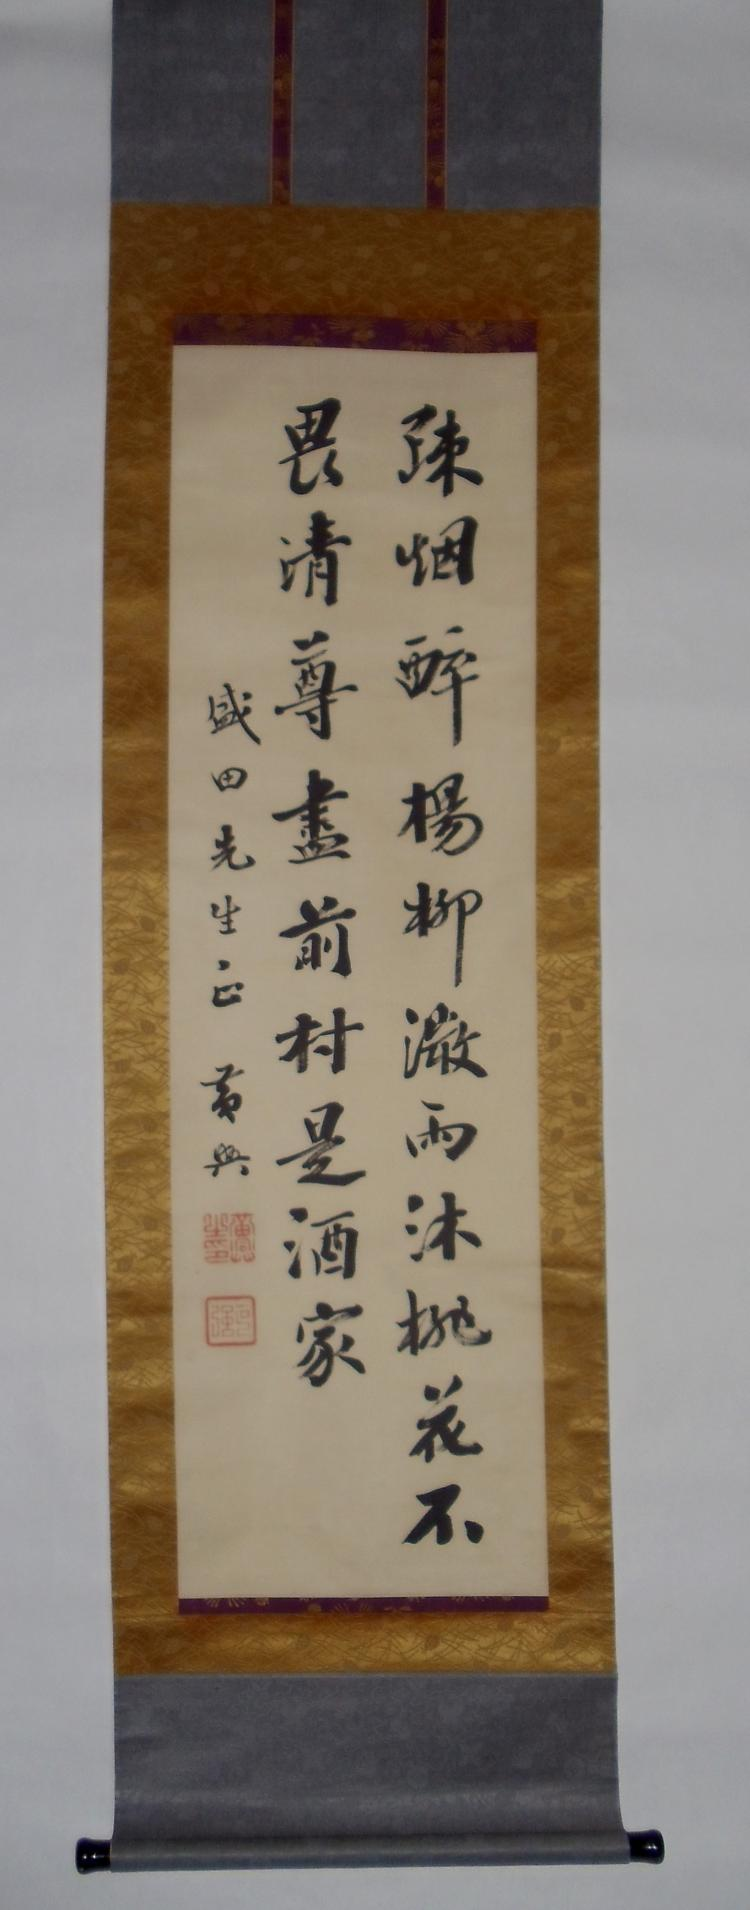 Calligraphy Attributed to Huang Xing (1874-1916)